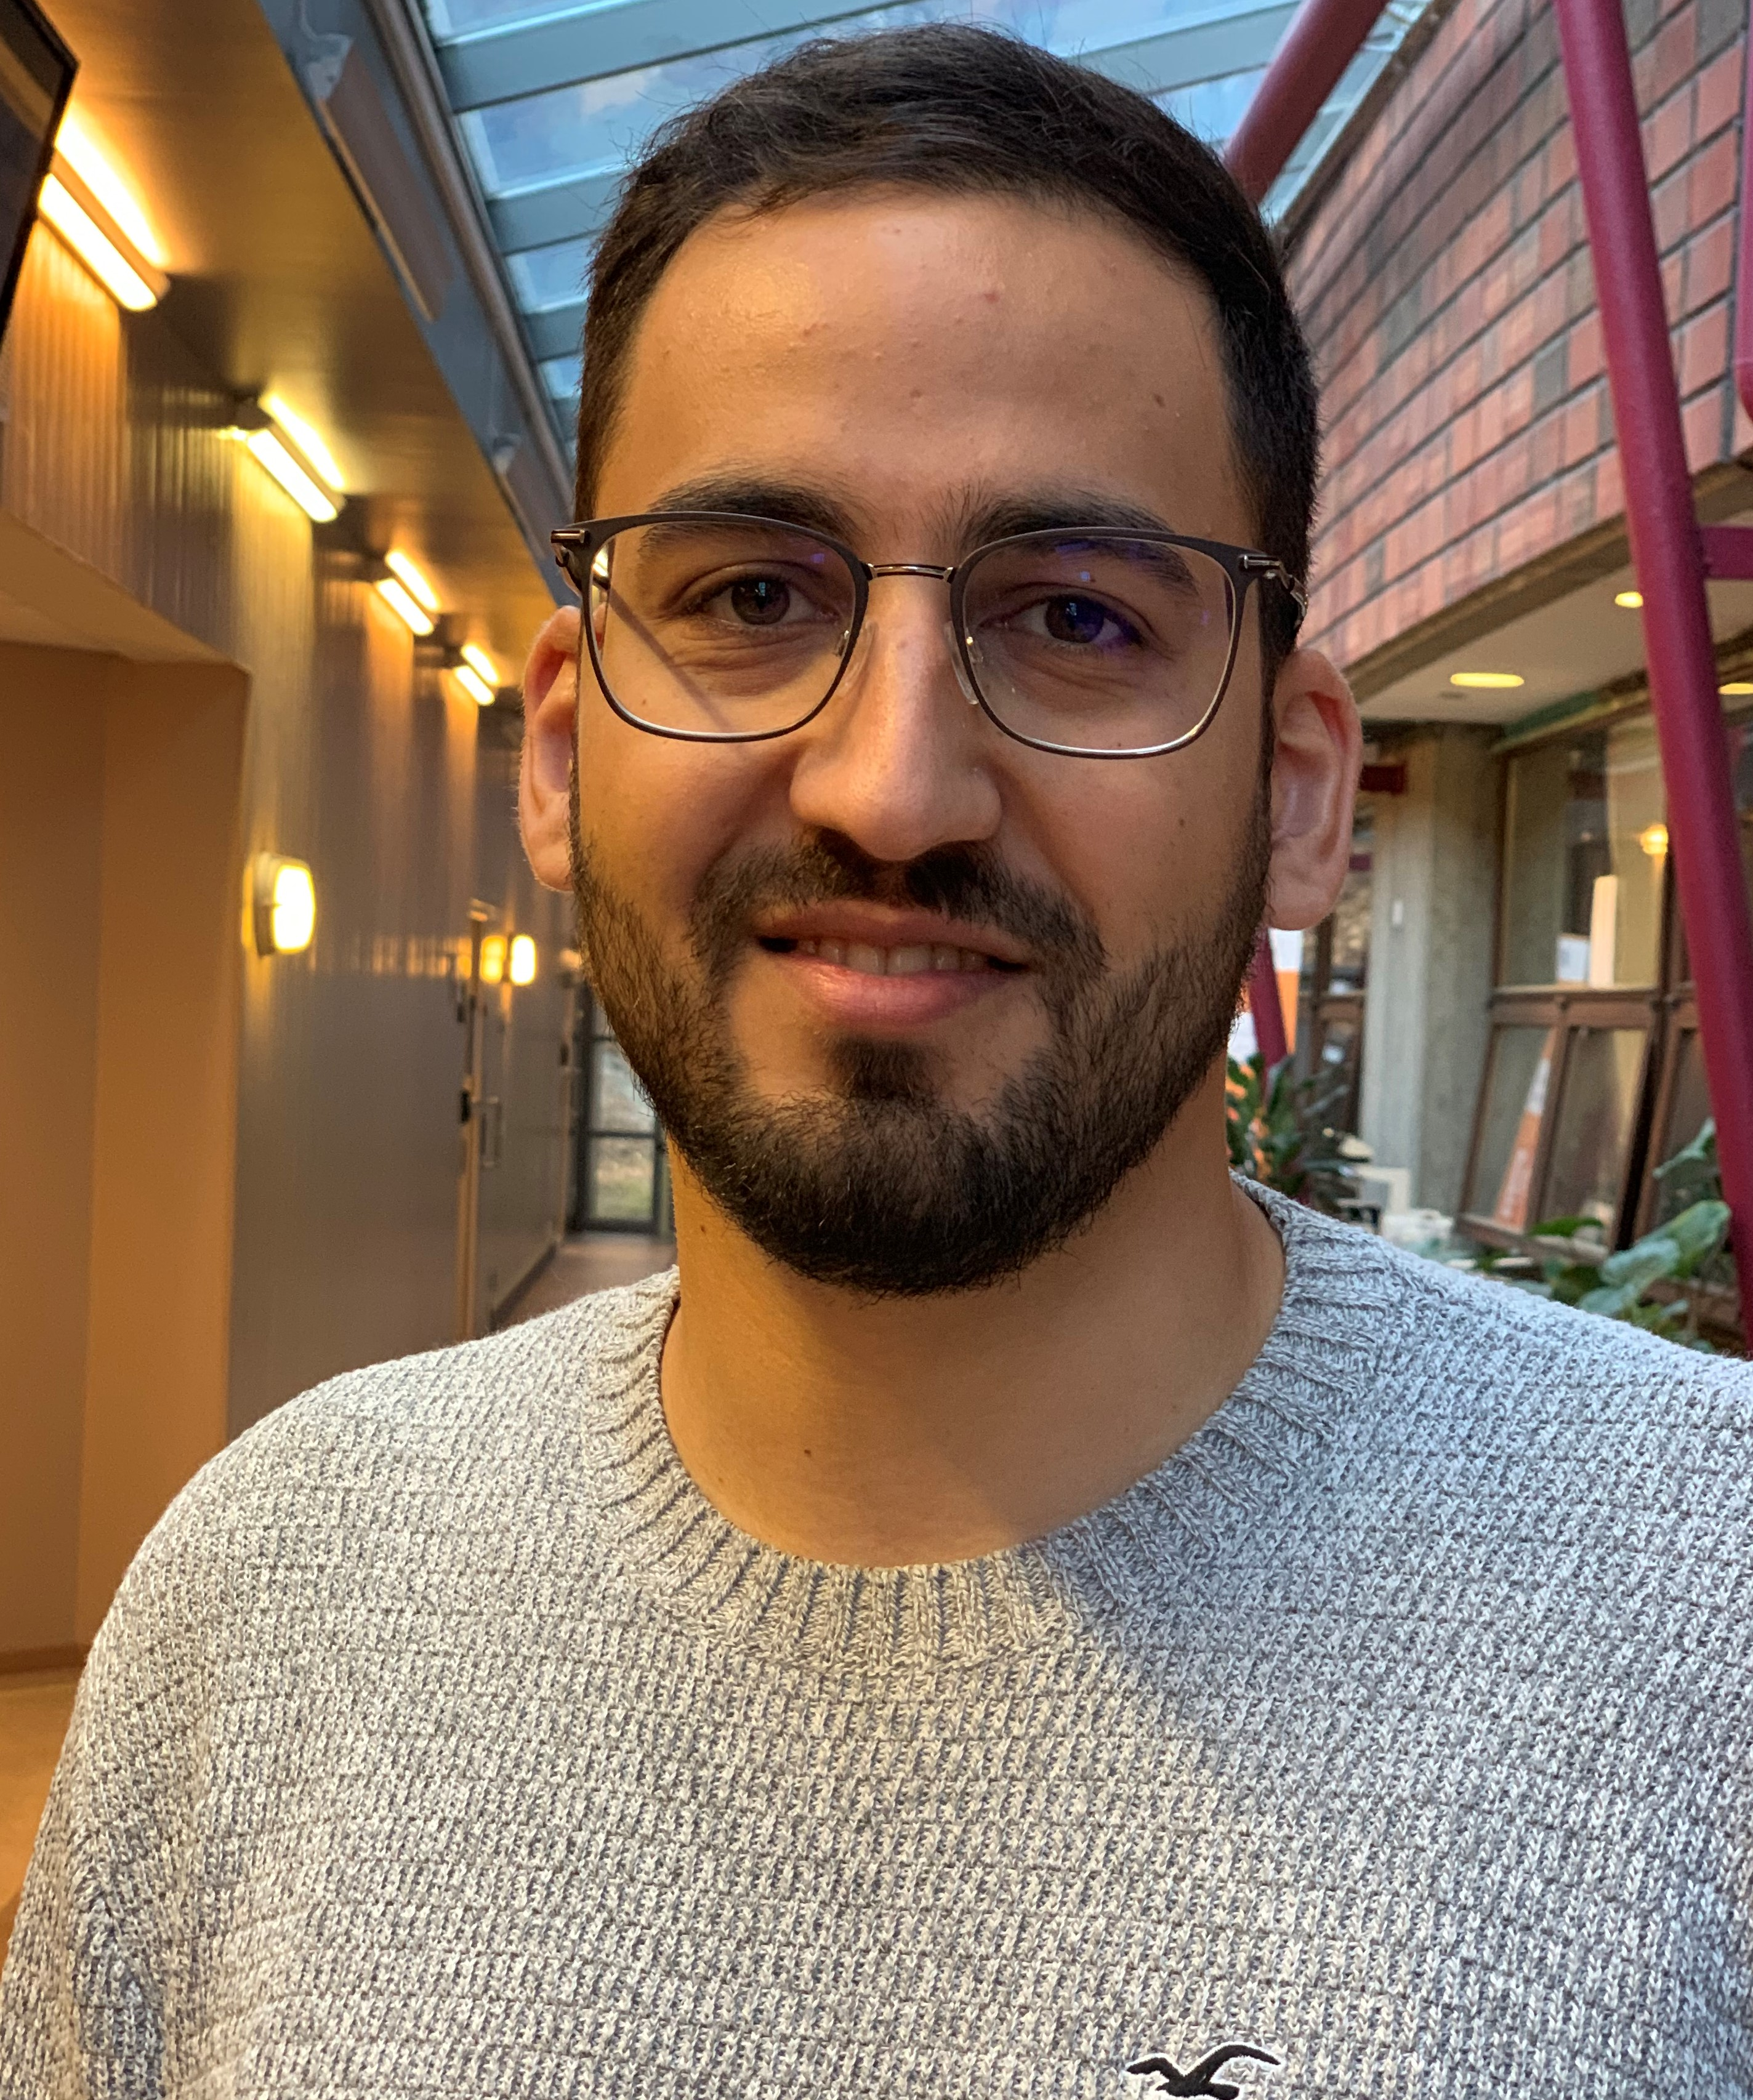 Ammar Ghanim has started as a PhD candidate at the Department